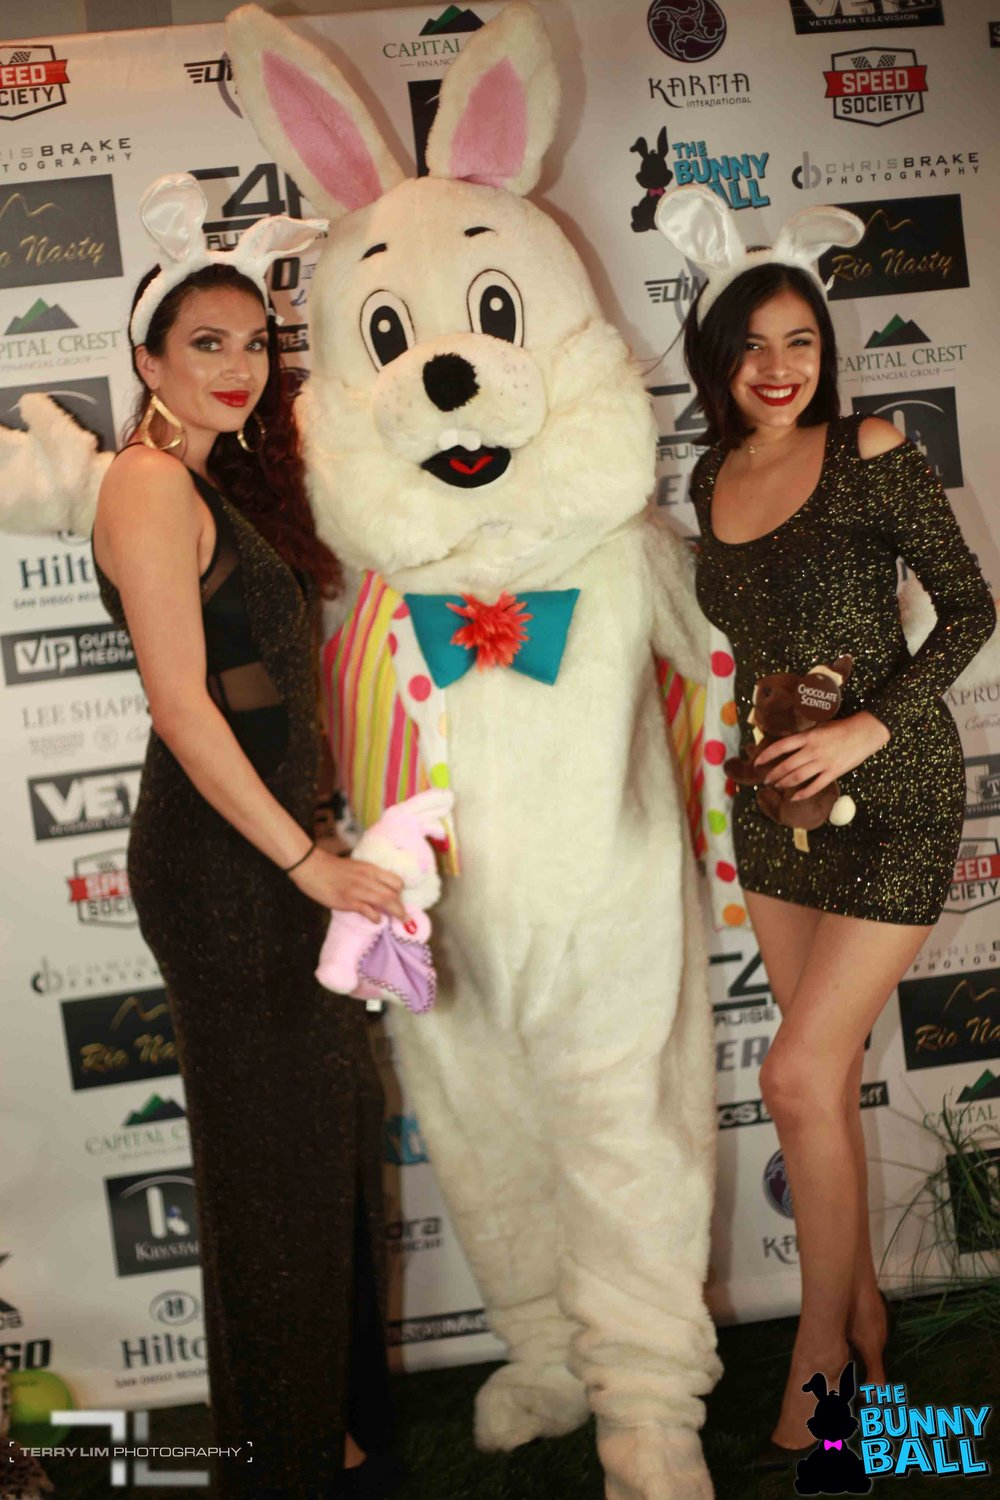 Terry_Lim_Photography_Bunny_Ball_2017 - 59.jpg